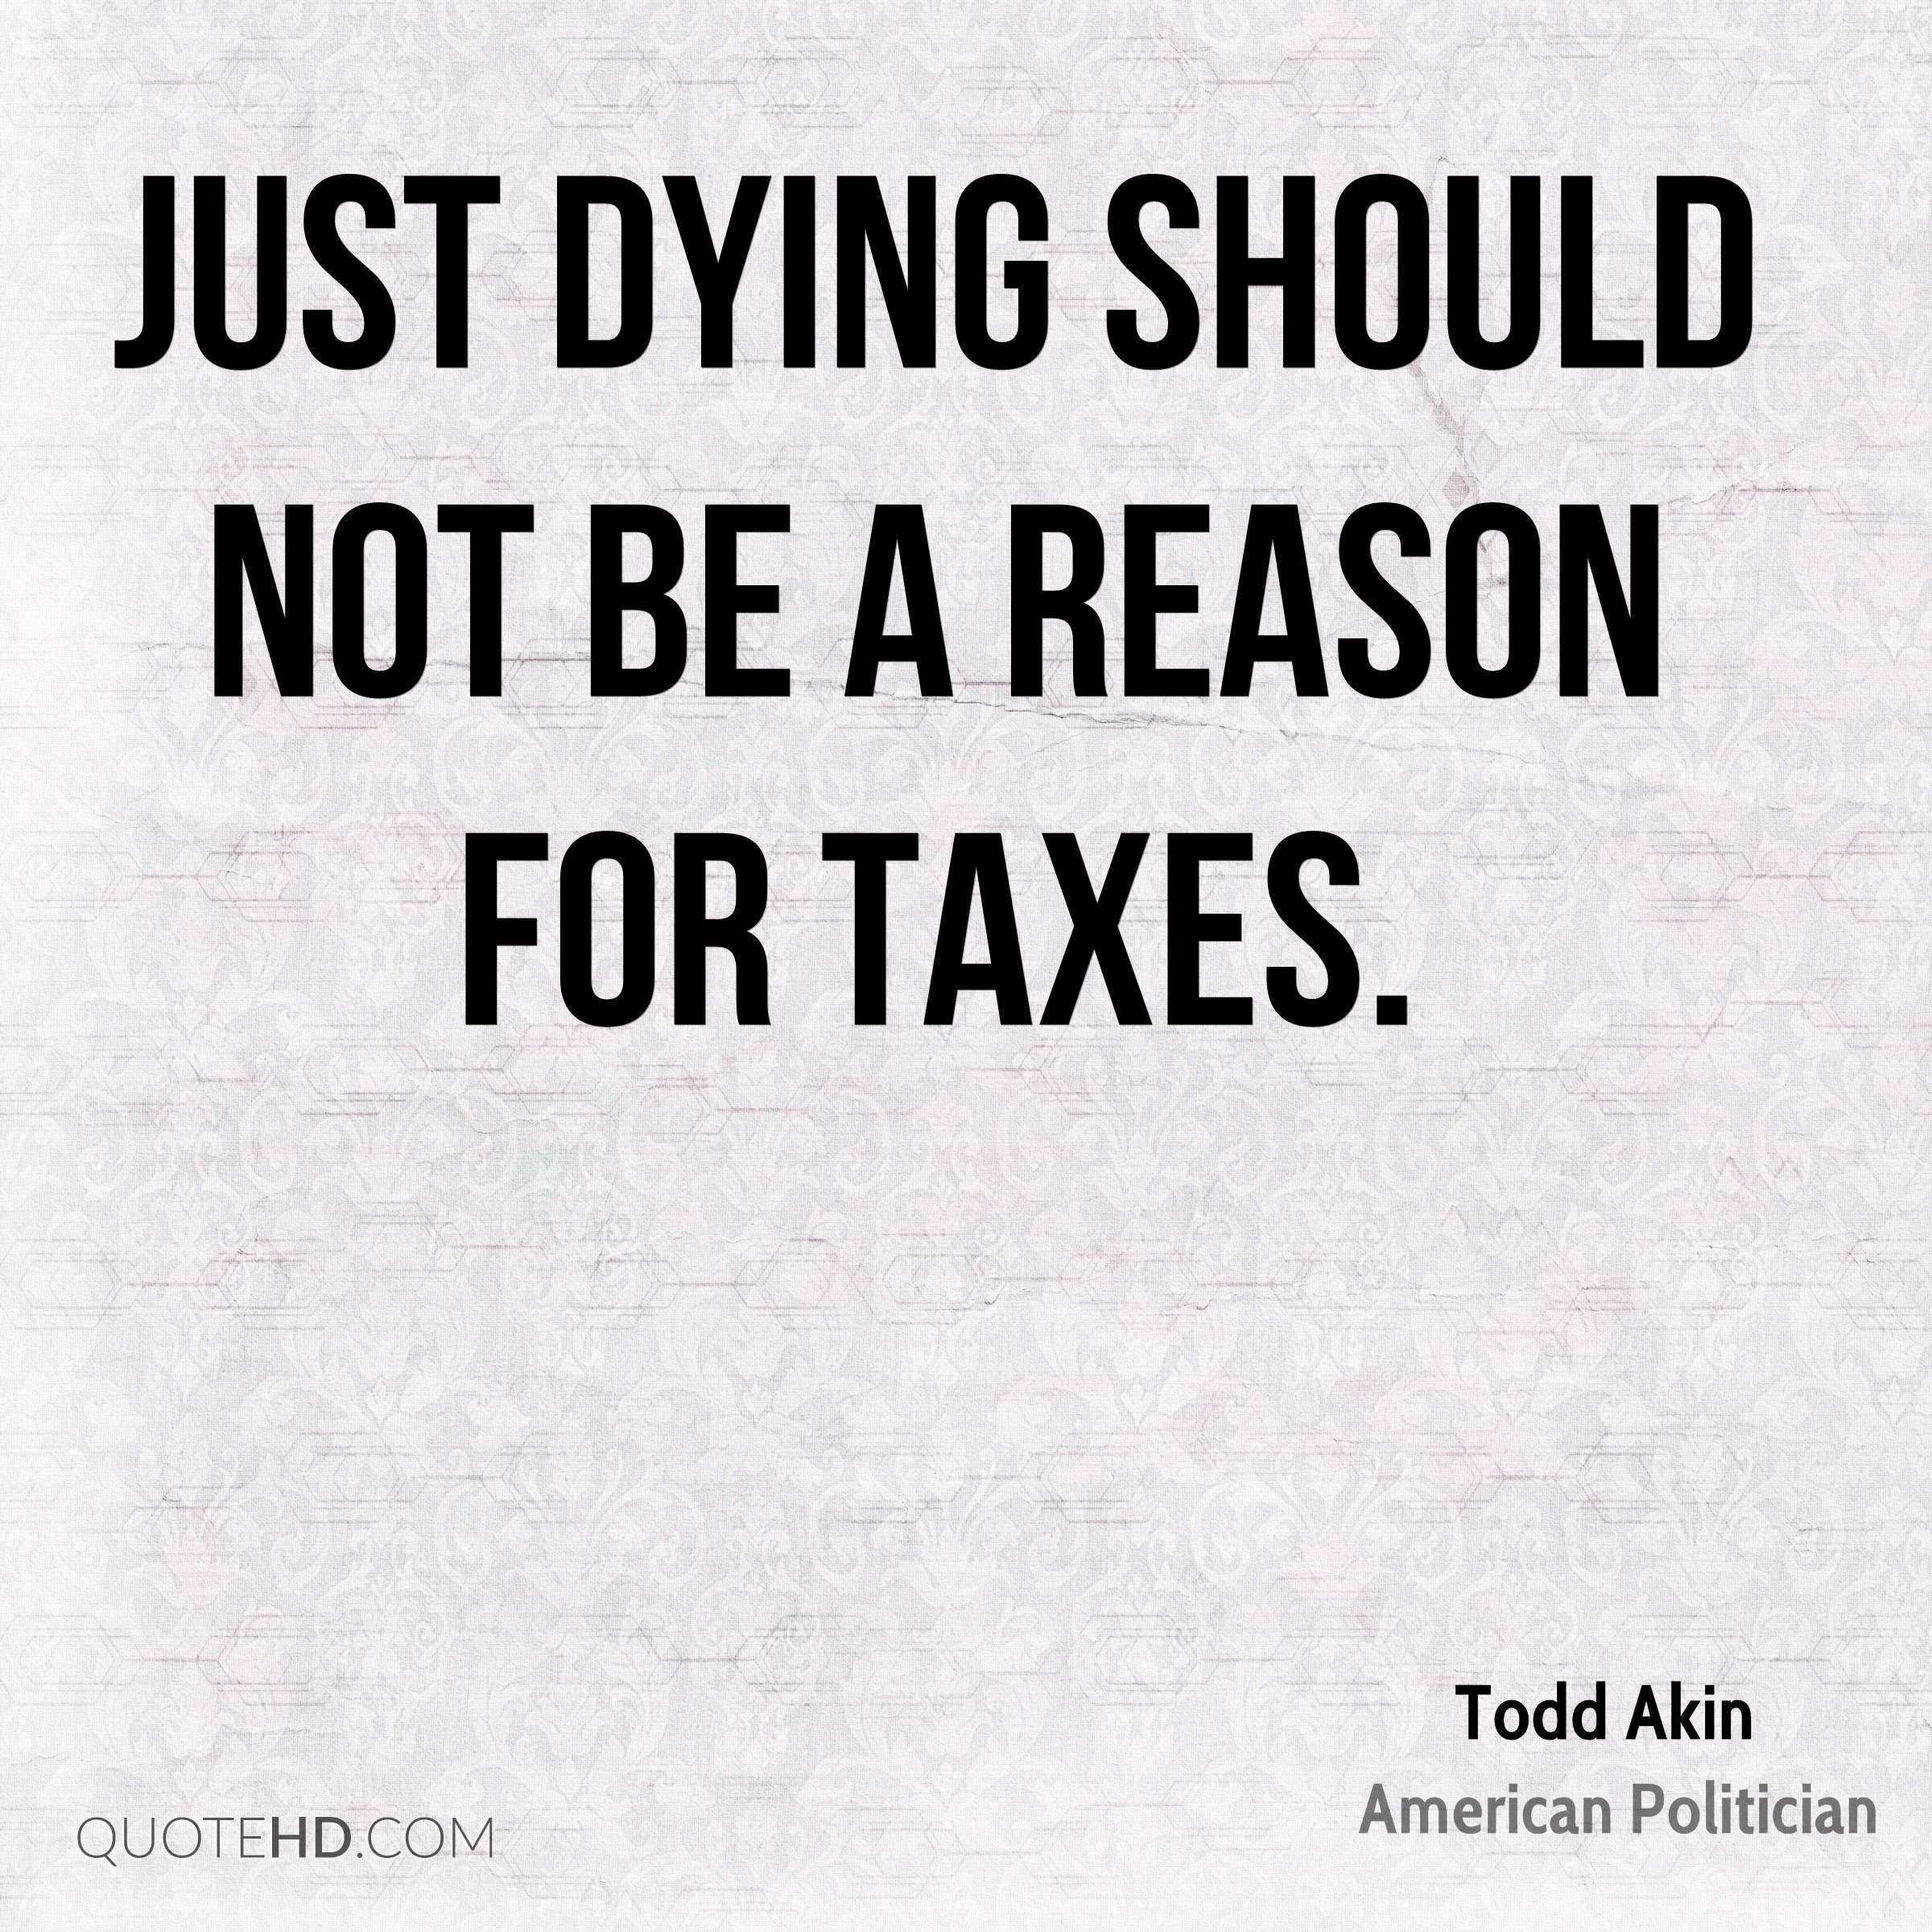 Just dying should not be a reason for taxes.